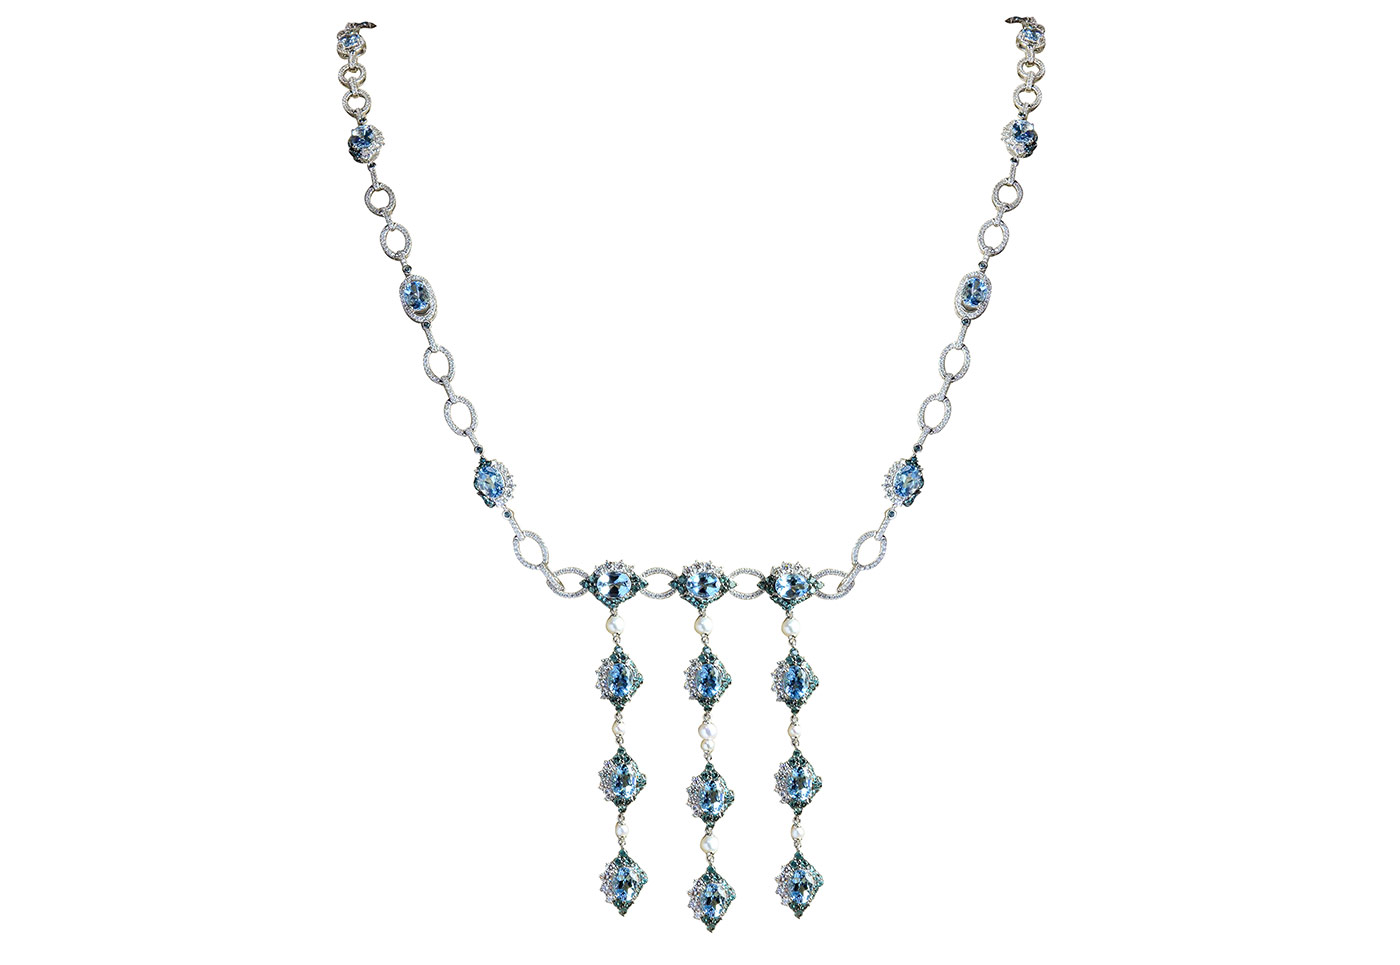 Sunita Nahata 'Blue Planet' necklace with Santa Maria aquamarines, Alexandrites, pearls and diamonds in white gold